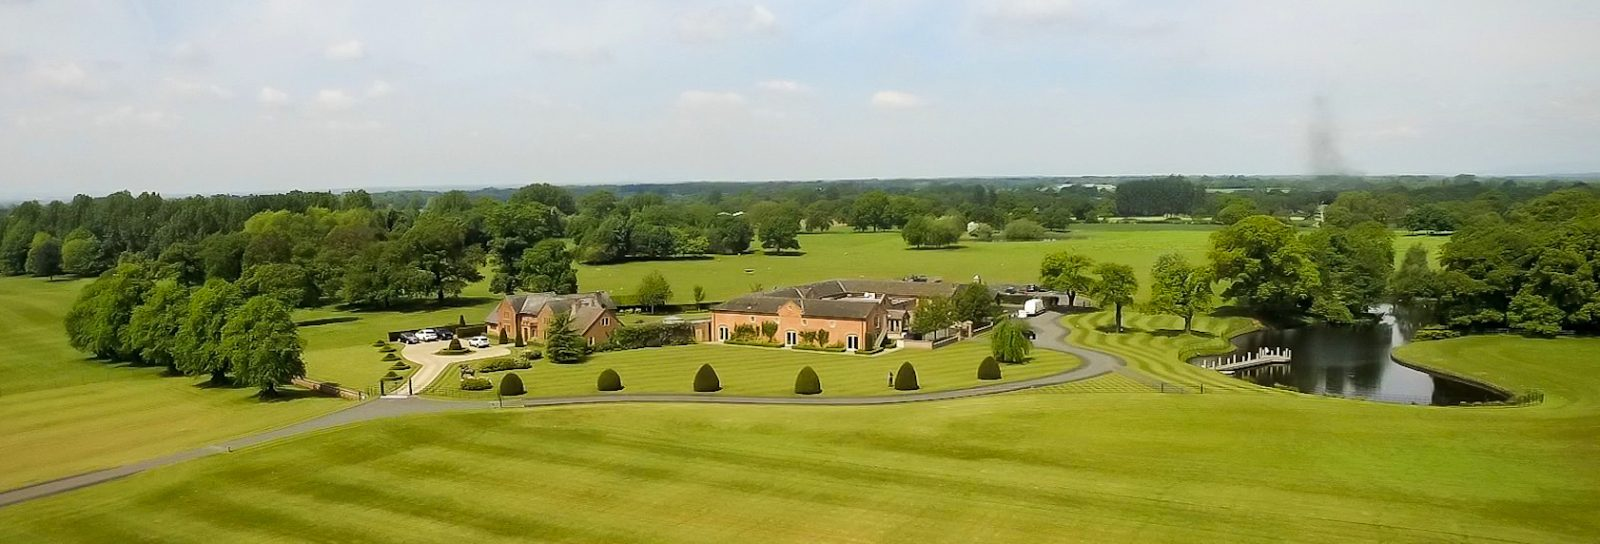 Aerial View at Merrydale Manor Cheshire Wedding Venue